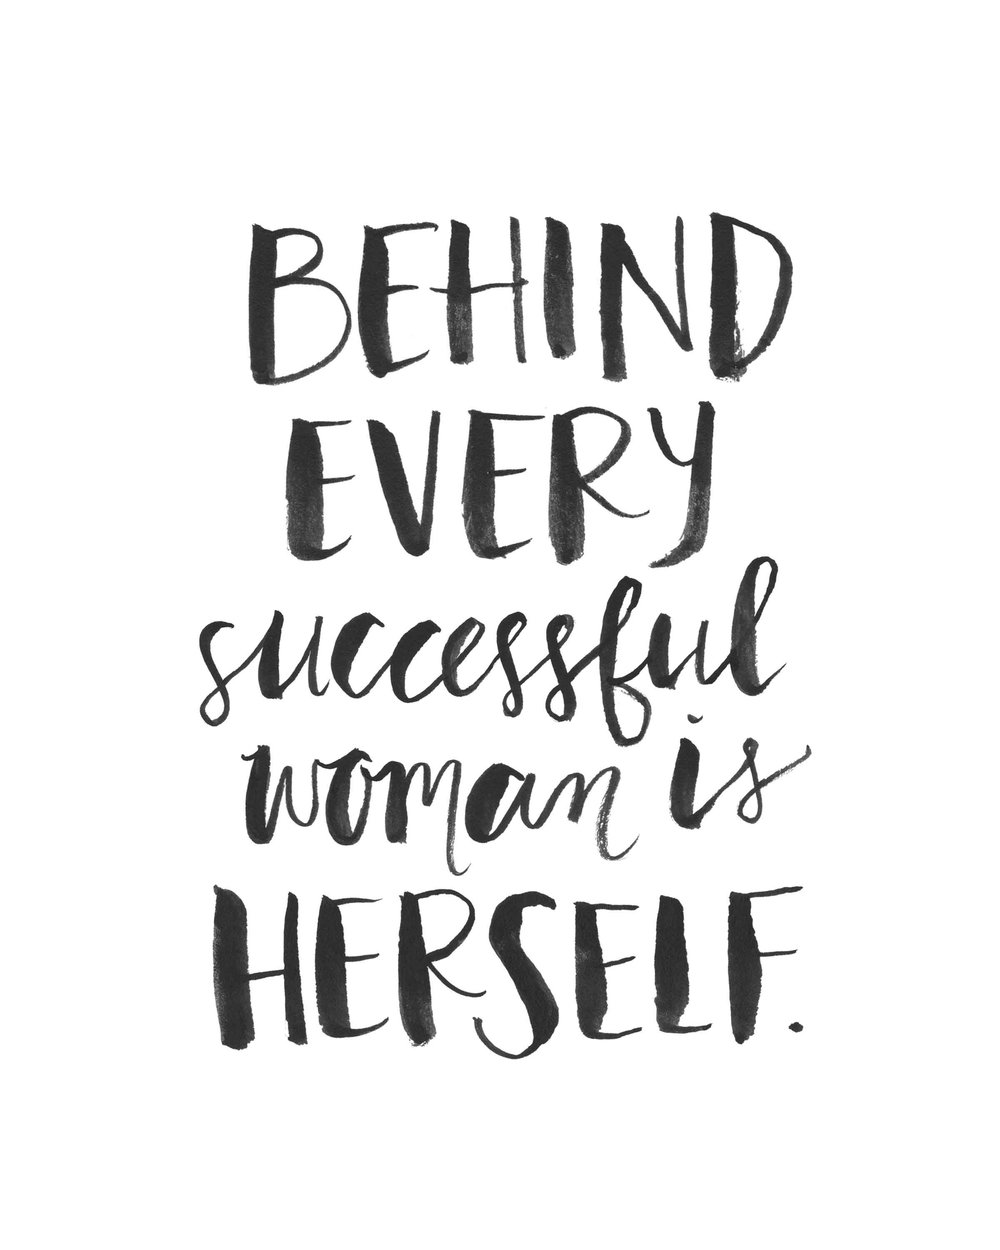 Behind every successful woman is herself. Hand lettered art print for sale by Gillian Tracey Design